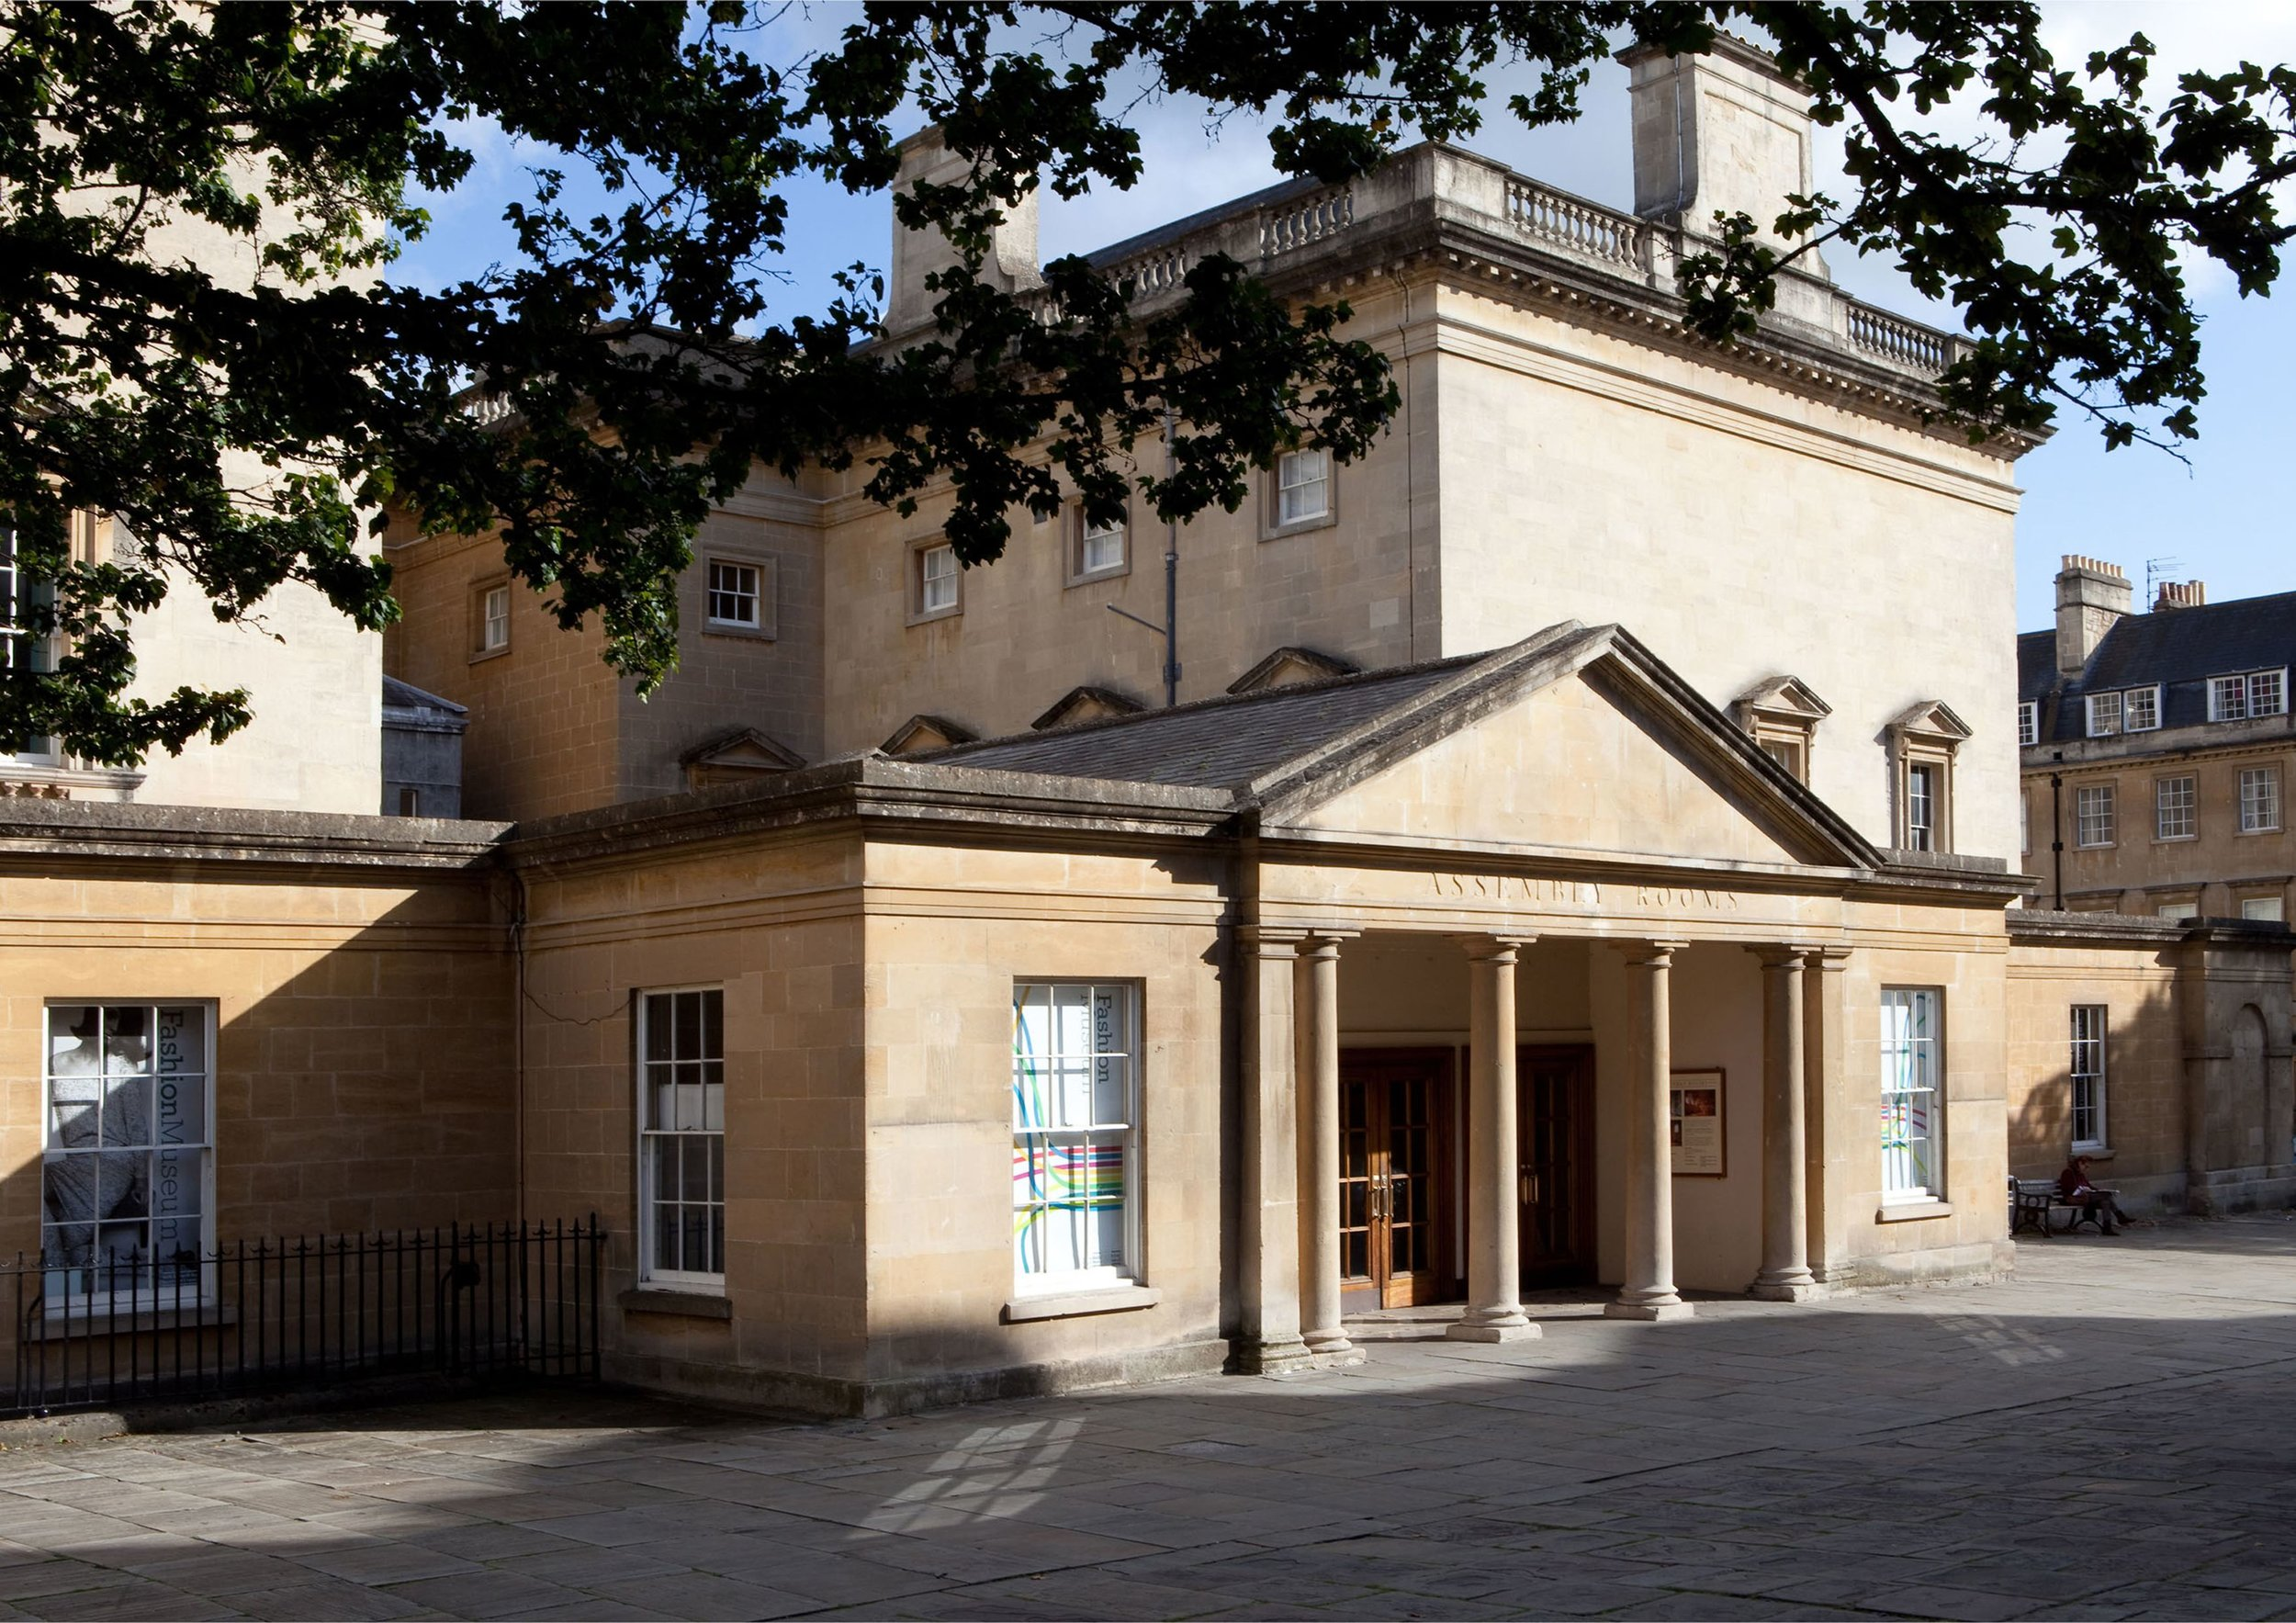 ASSEMBLY ROOMS exterior_0.jpg